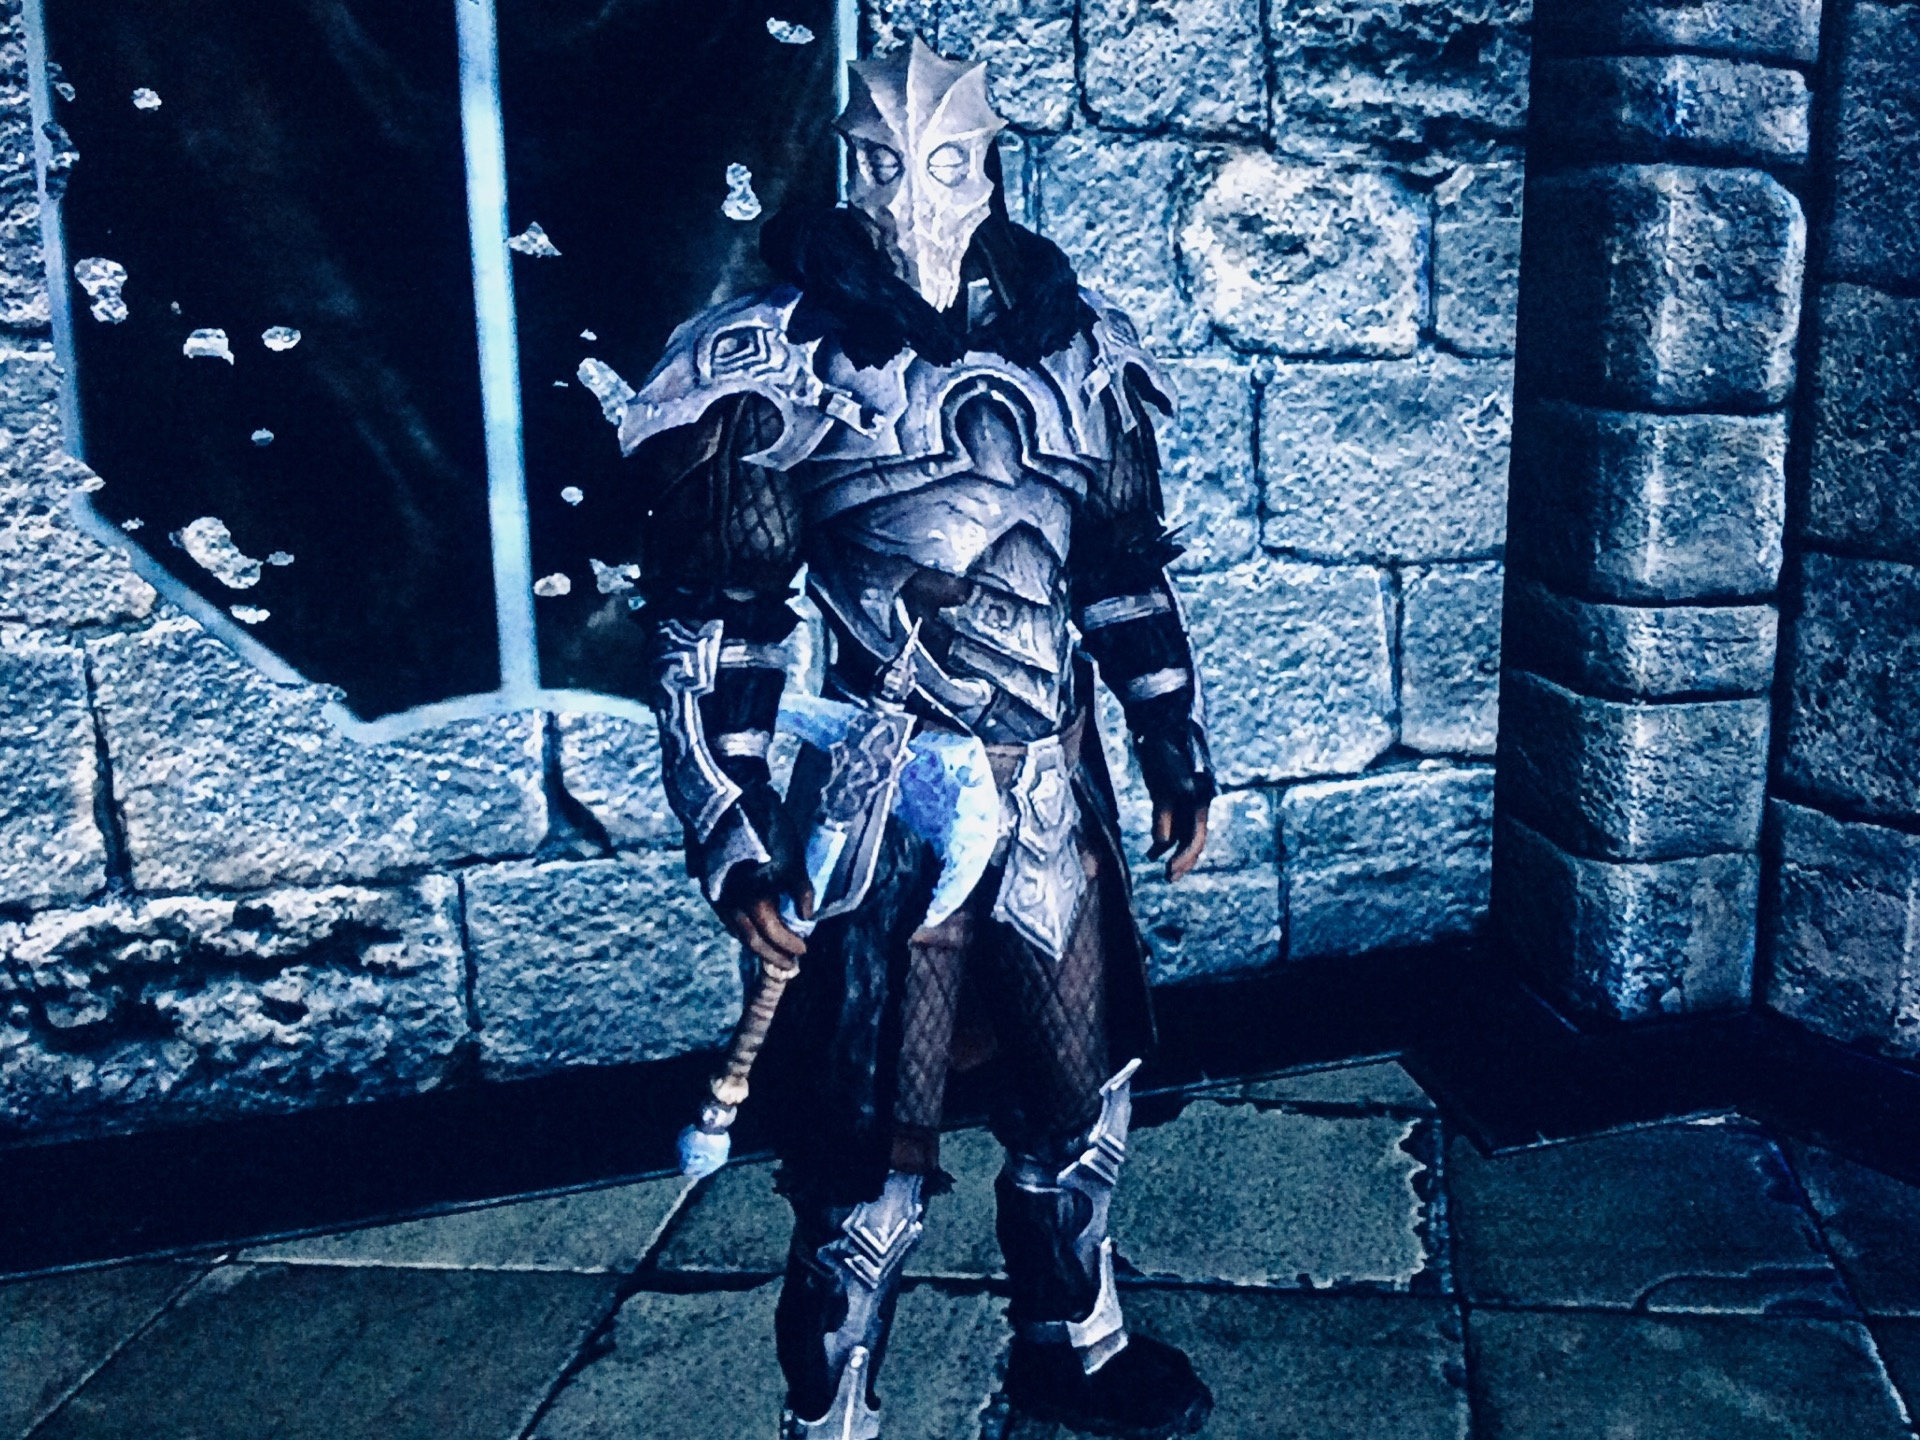 Does your Skyrim character have a backstory? If so, what? - Quora